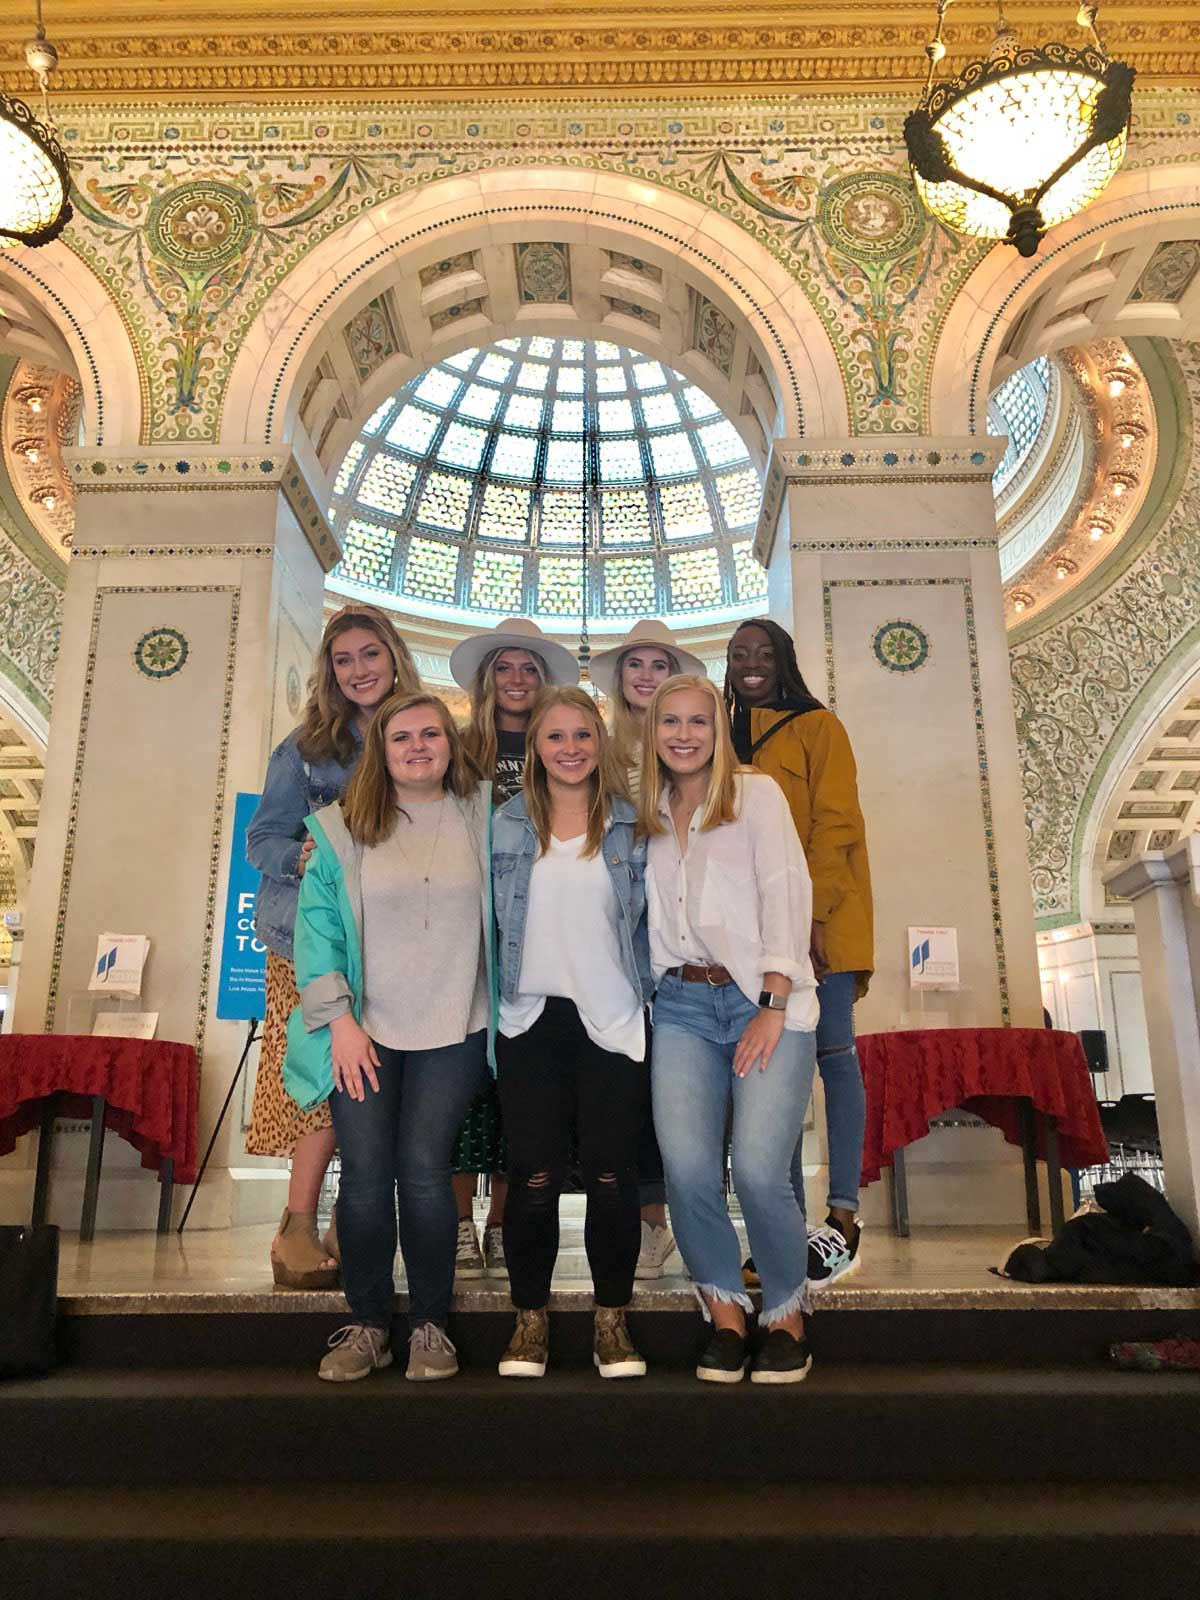 a group of students pose inside iconic building in Chicago